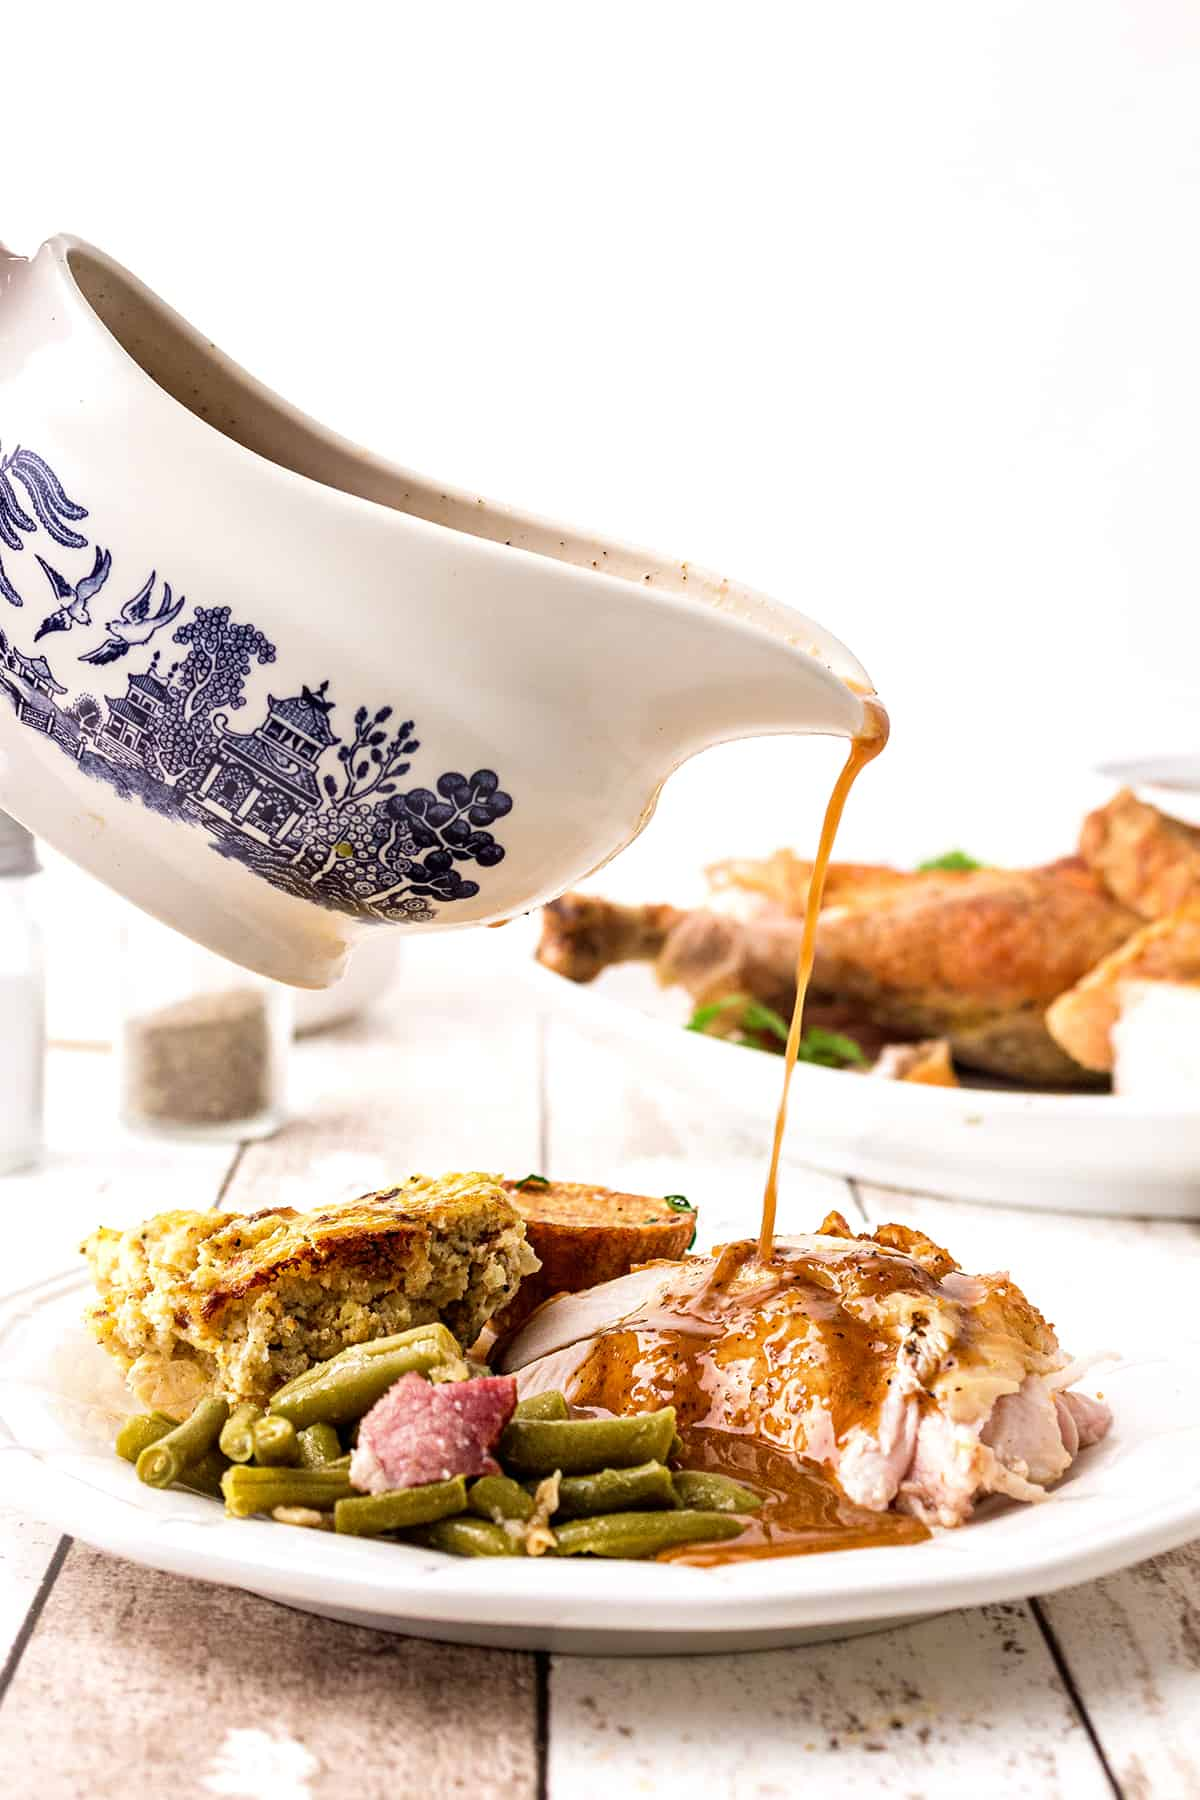 Gravy poured from a gravy boat onto a plate containing sliced oven roasted turkey and side dishes.